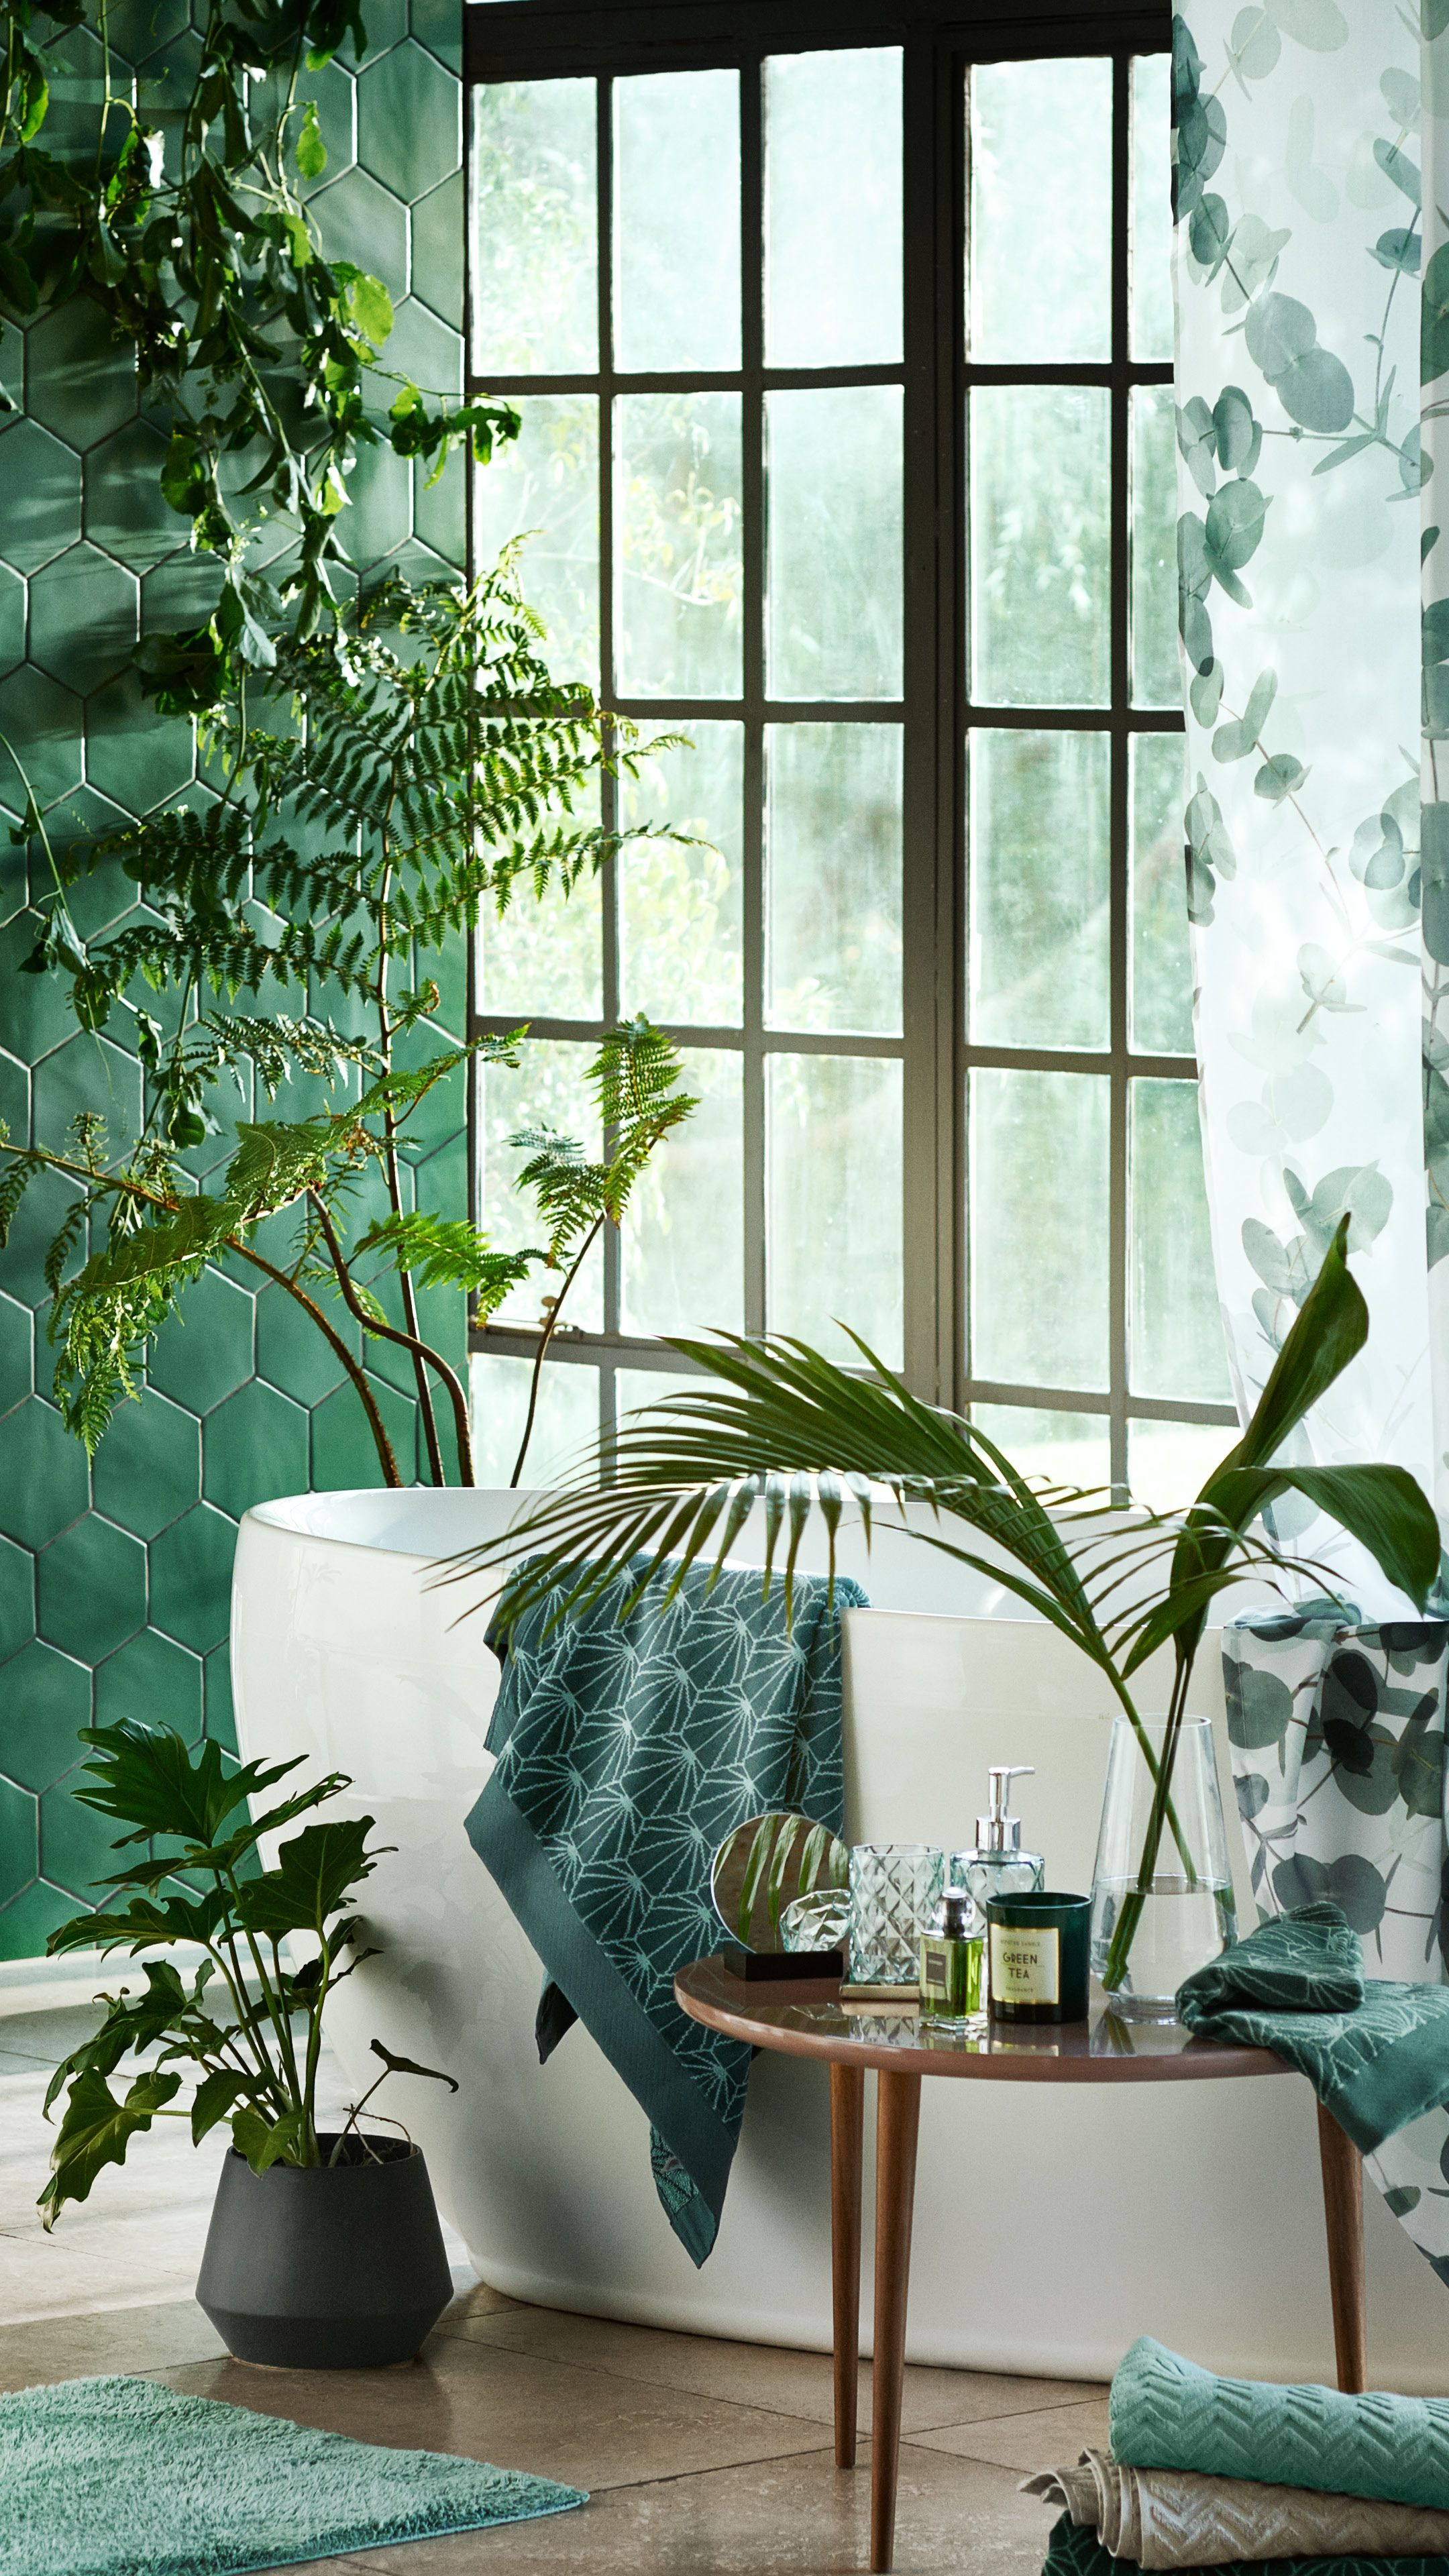 Liven Up Any Room With New Home Accessories And Green Tones H M